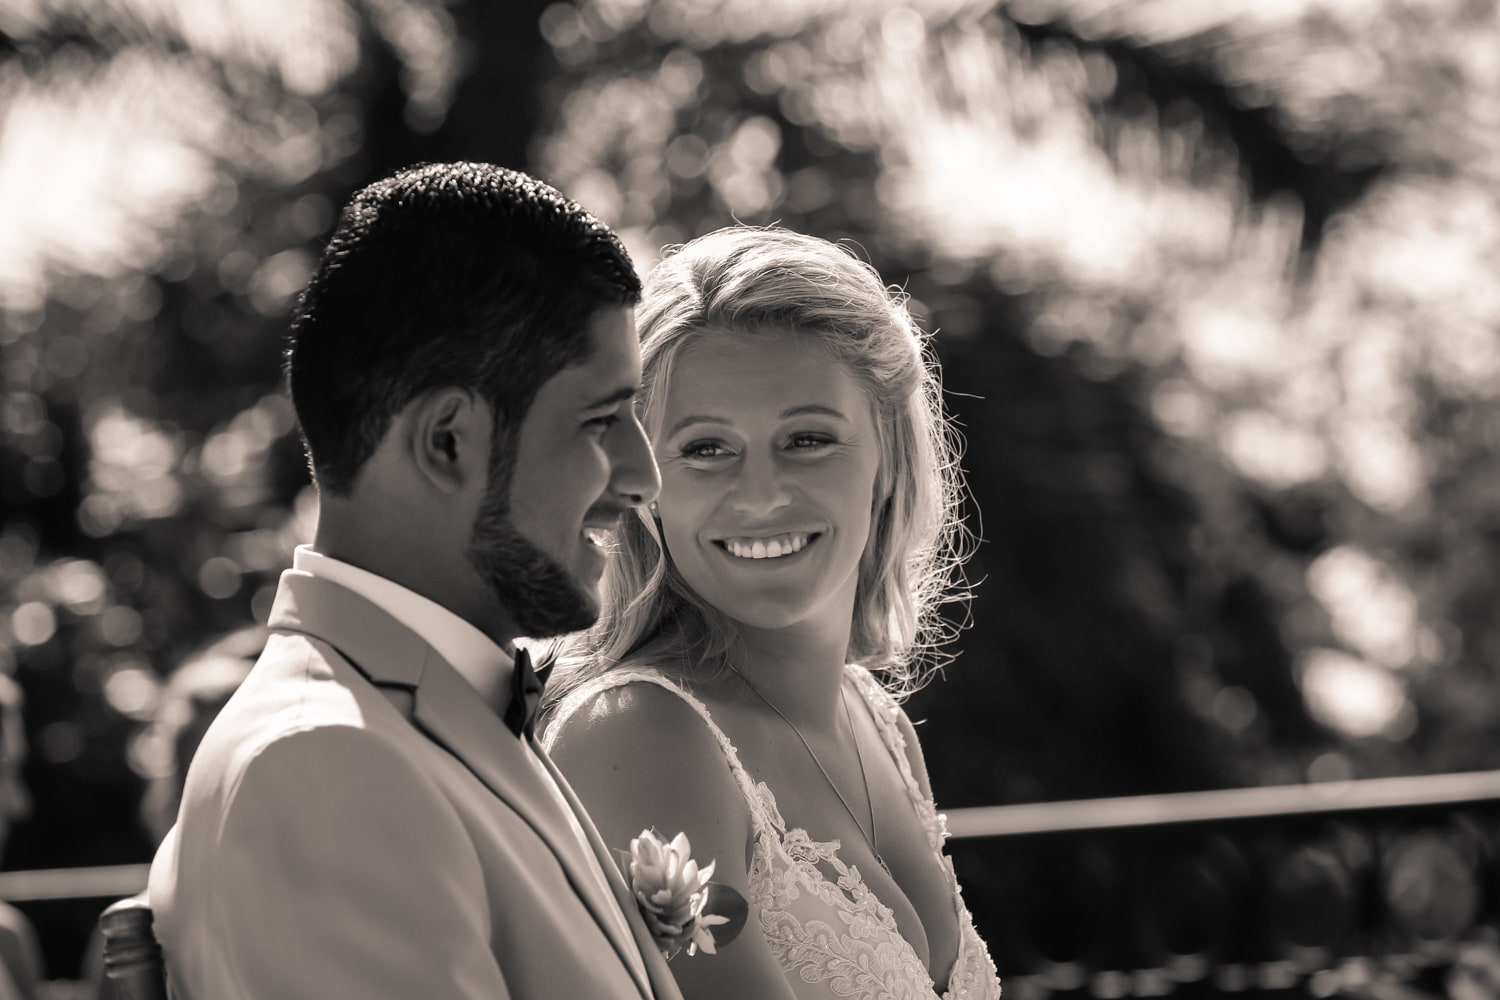 Bride smiles at groom while sitting during wedding ceremony.